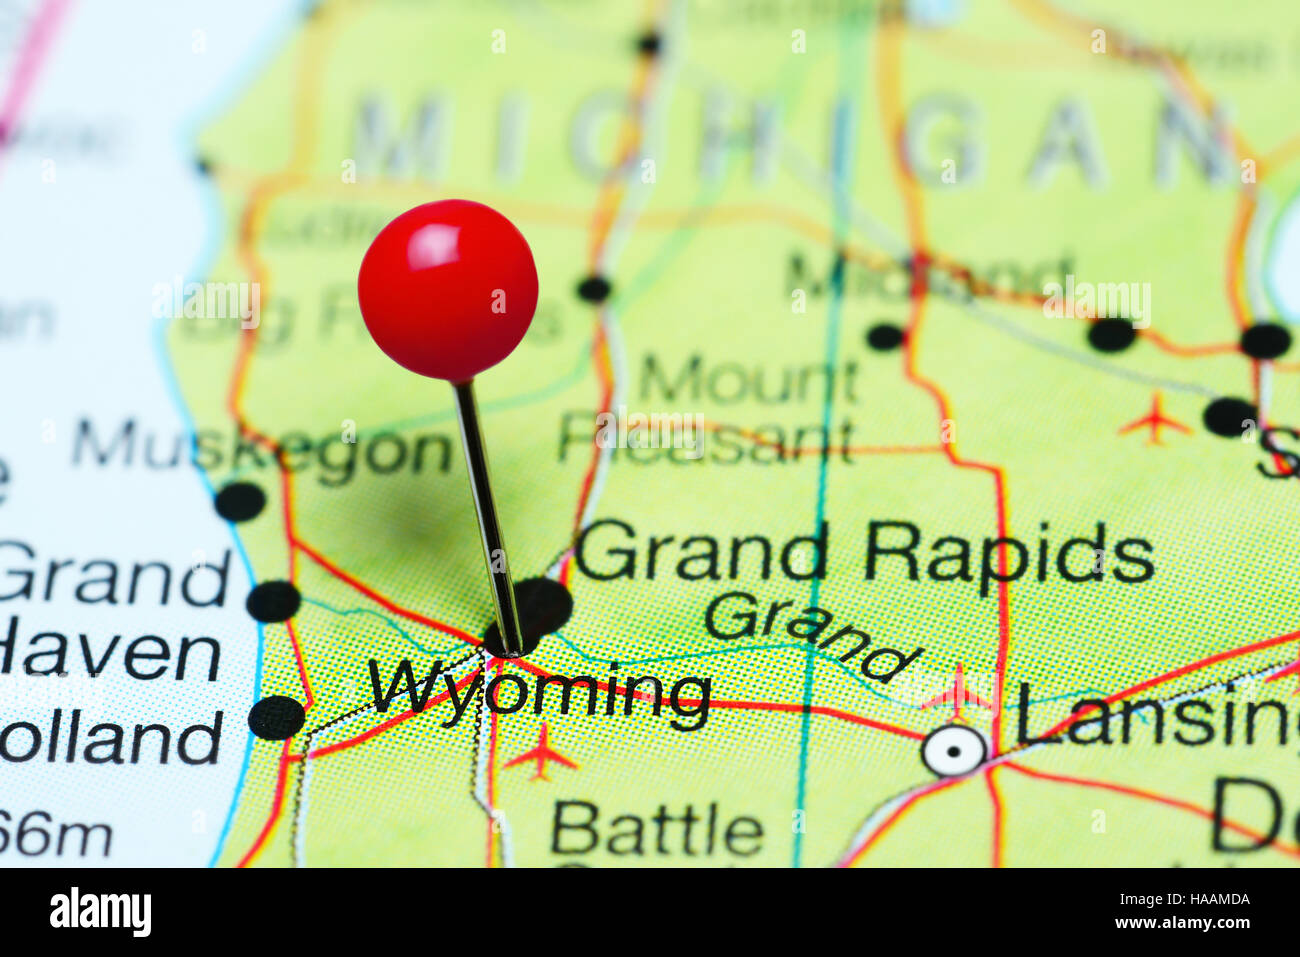 Wyoming State Maps USA Maps Of Wyoming WY Wyoming State Maps USA - Road map wyoming usa